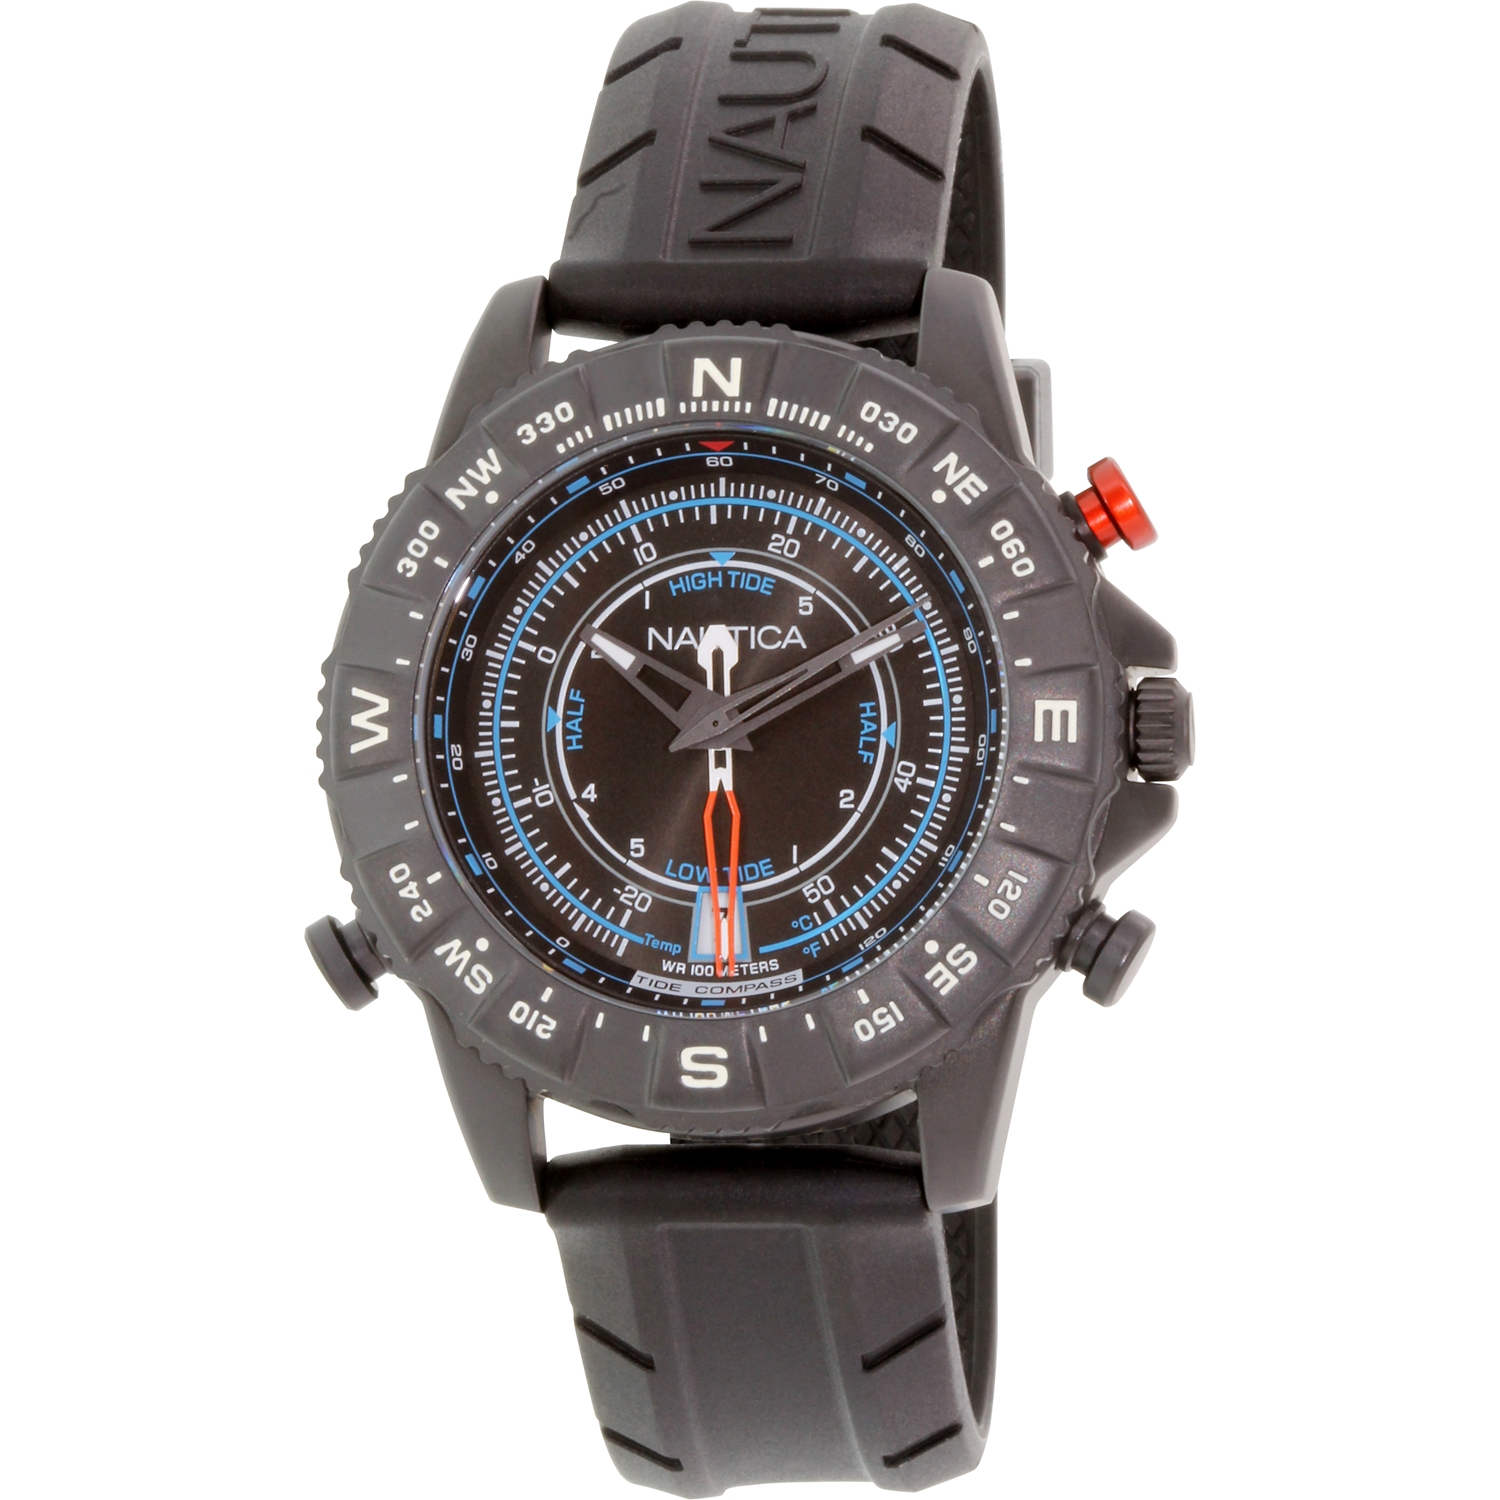 Nautica Men's Nsr 103 NAD21001G Black Rubber Analog Quartz Watch by Nautica